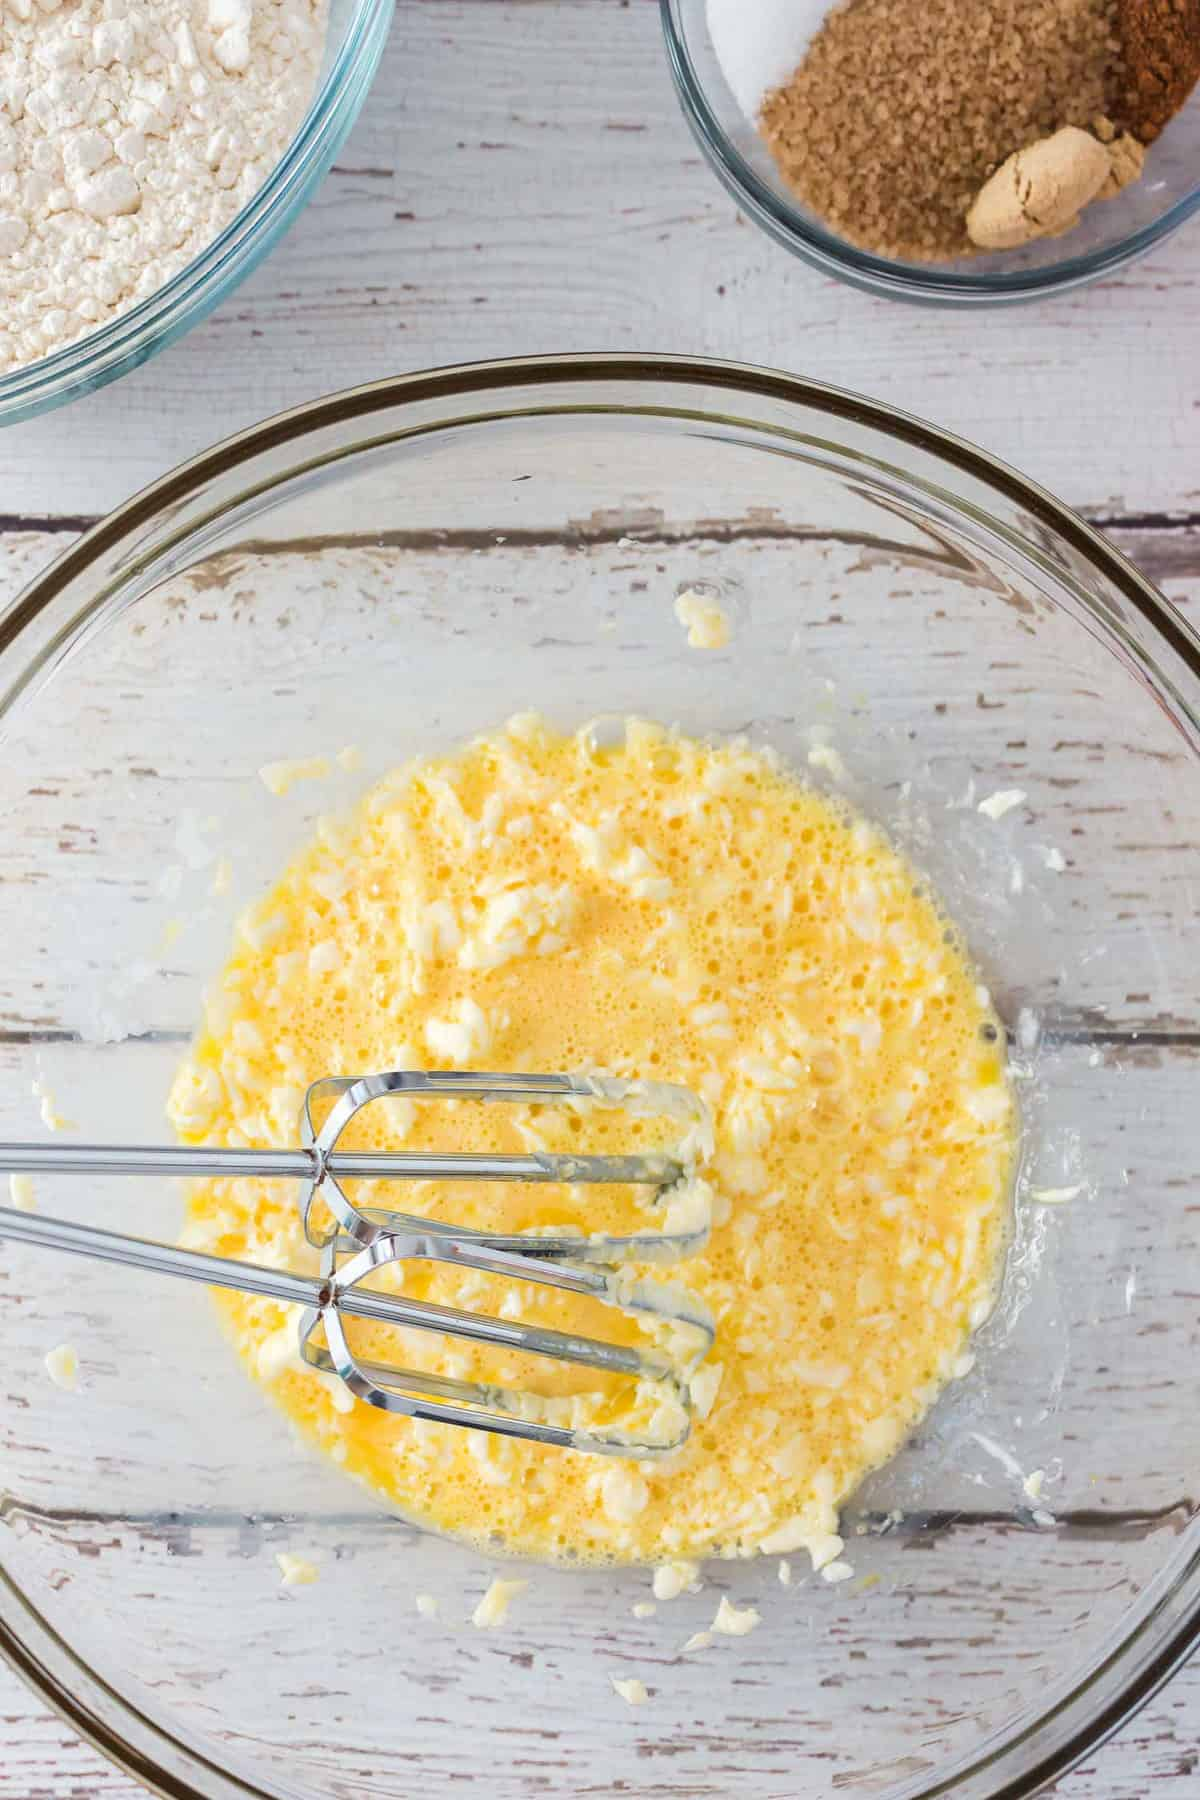 Eggs and butter beat together in a bowl.